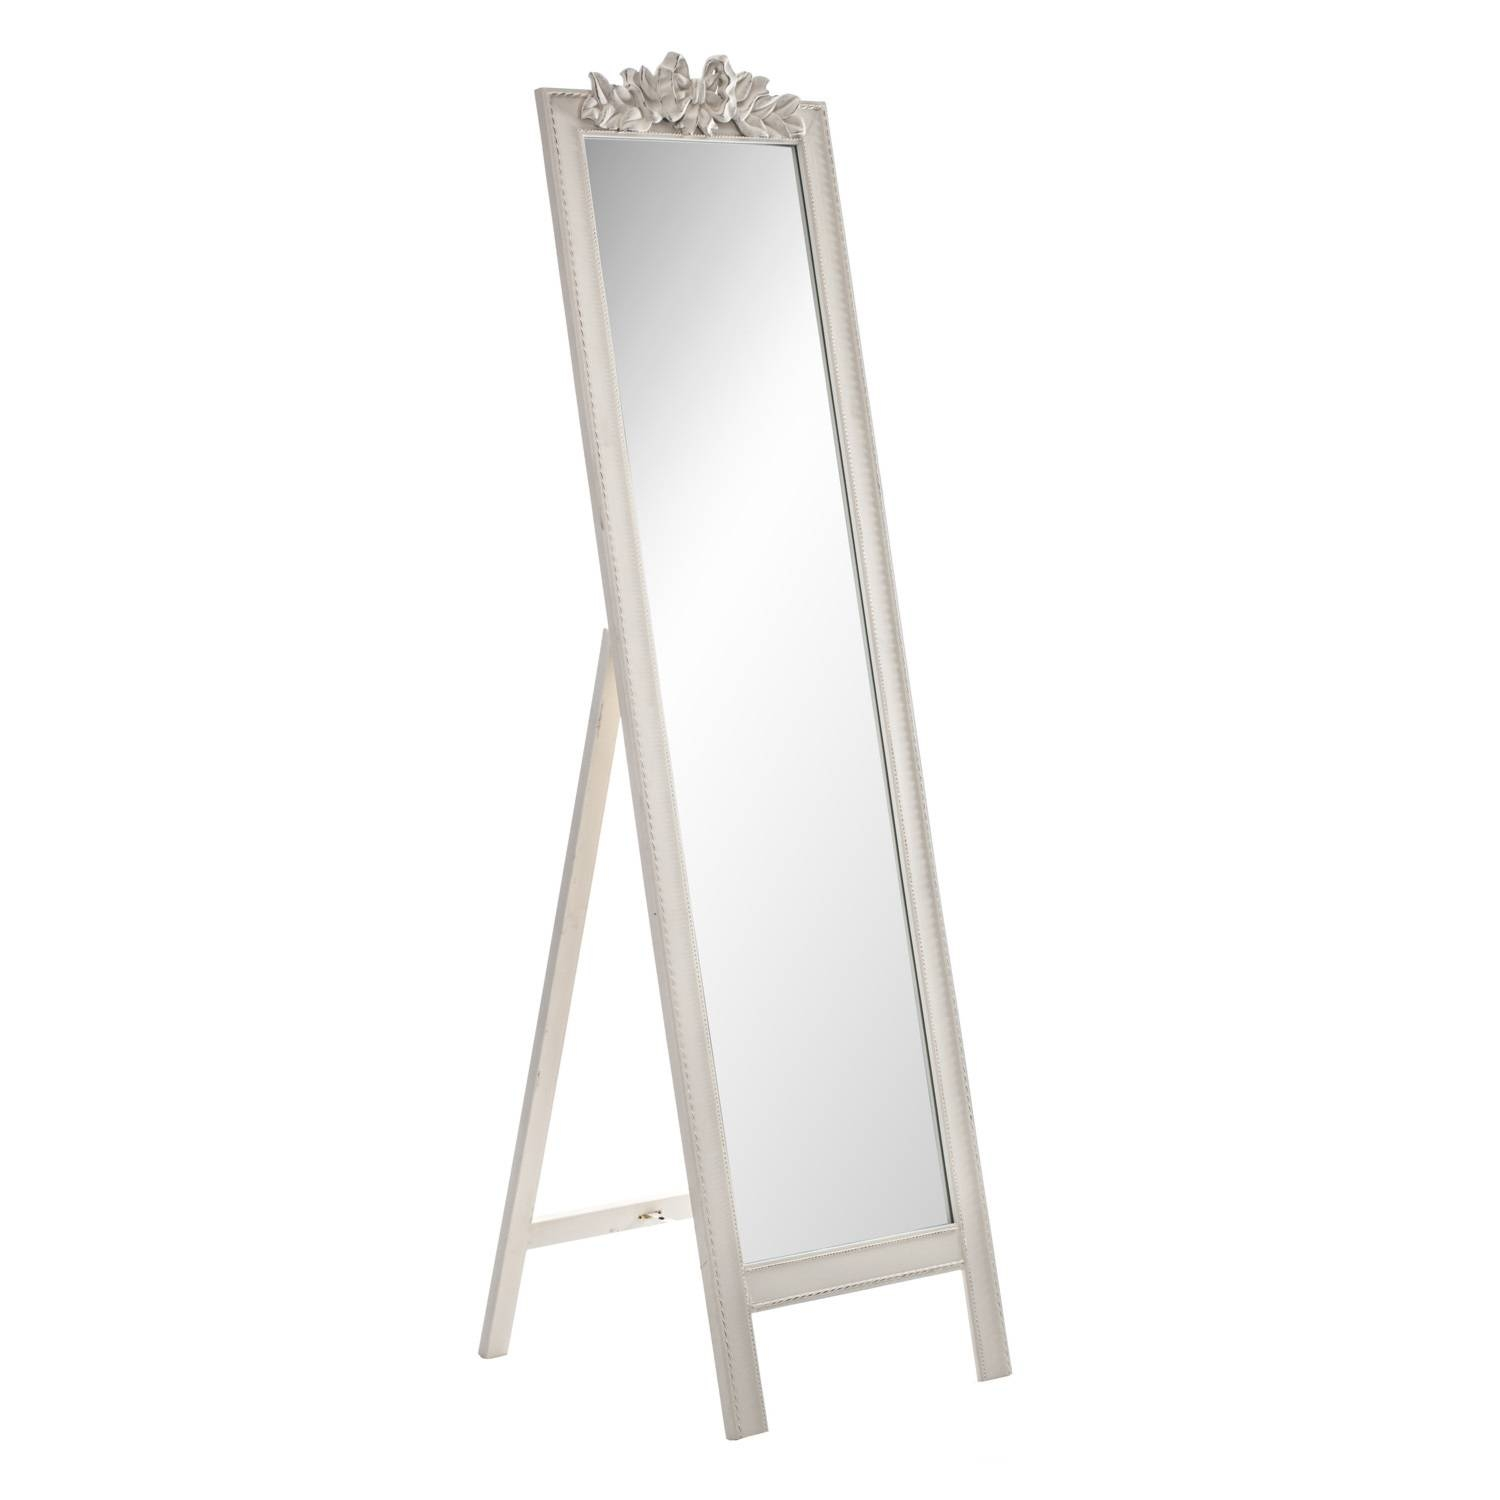 Homeware: Oval Full Length Standing Mirror | Large Floor Mirrors inside Oval Freestanding Mirrors (Image 19 of 25)